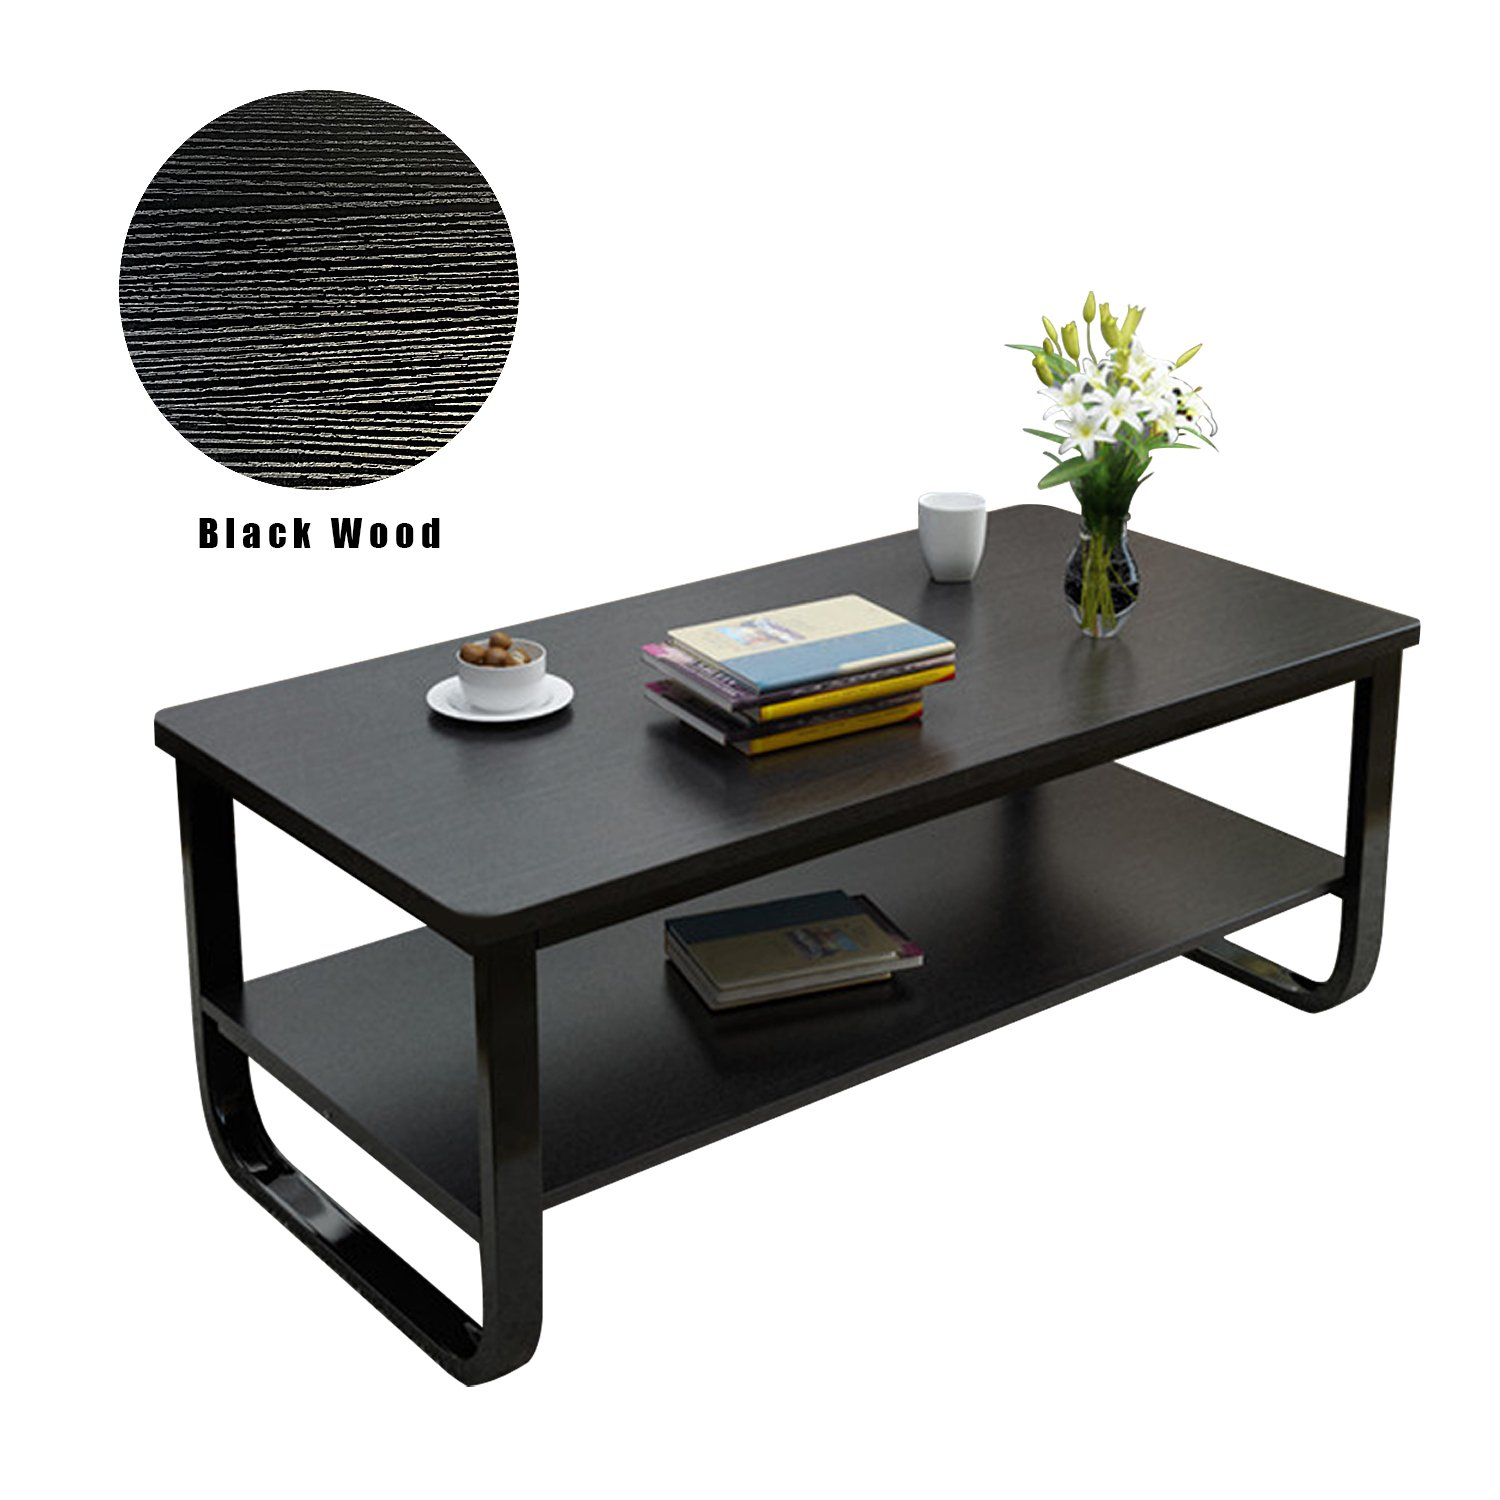 DL furniture- Black Metal frame Luxury coffee table with Smooth surface, 2 tier and stable stand/Black